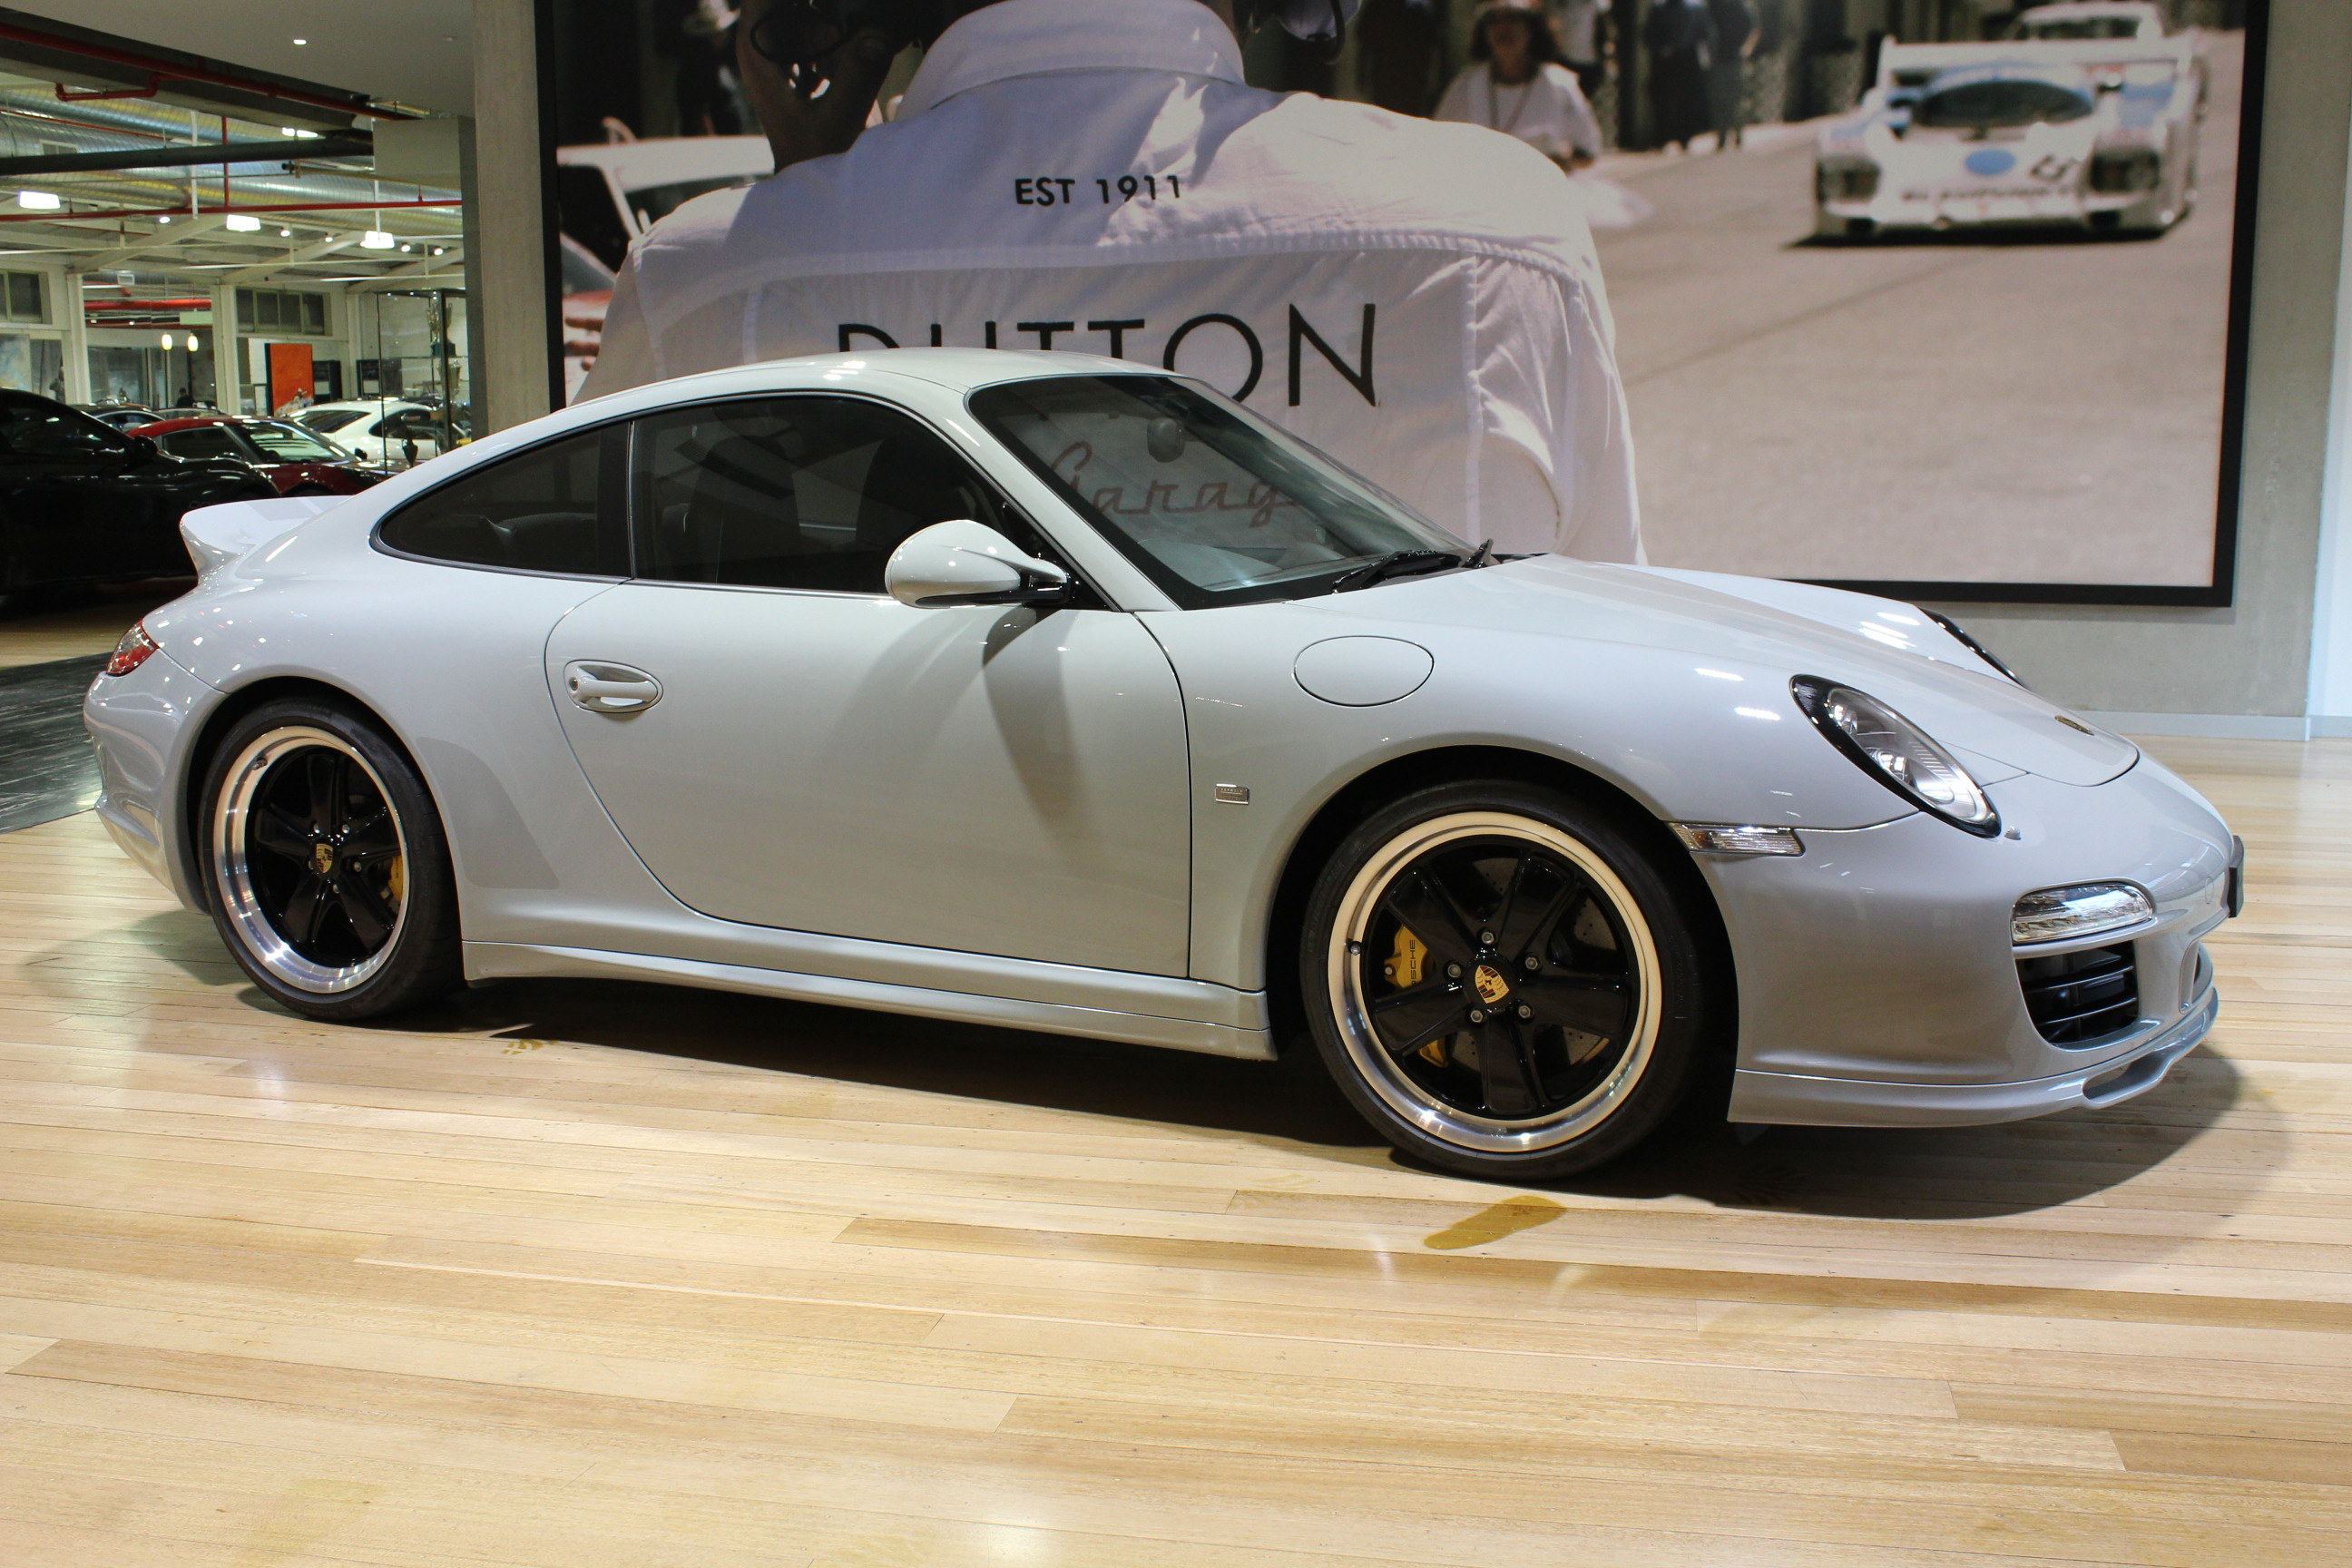 2010 Porsche 911/997 Series 2 Sport Classic for sale in Australia